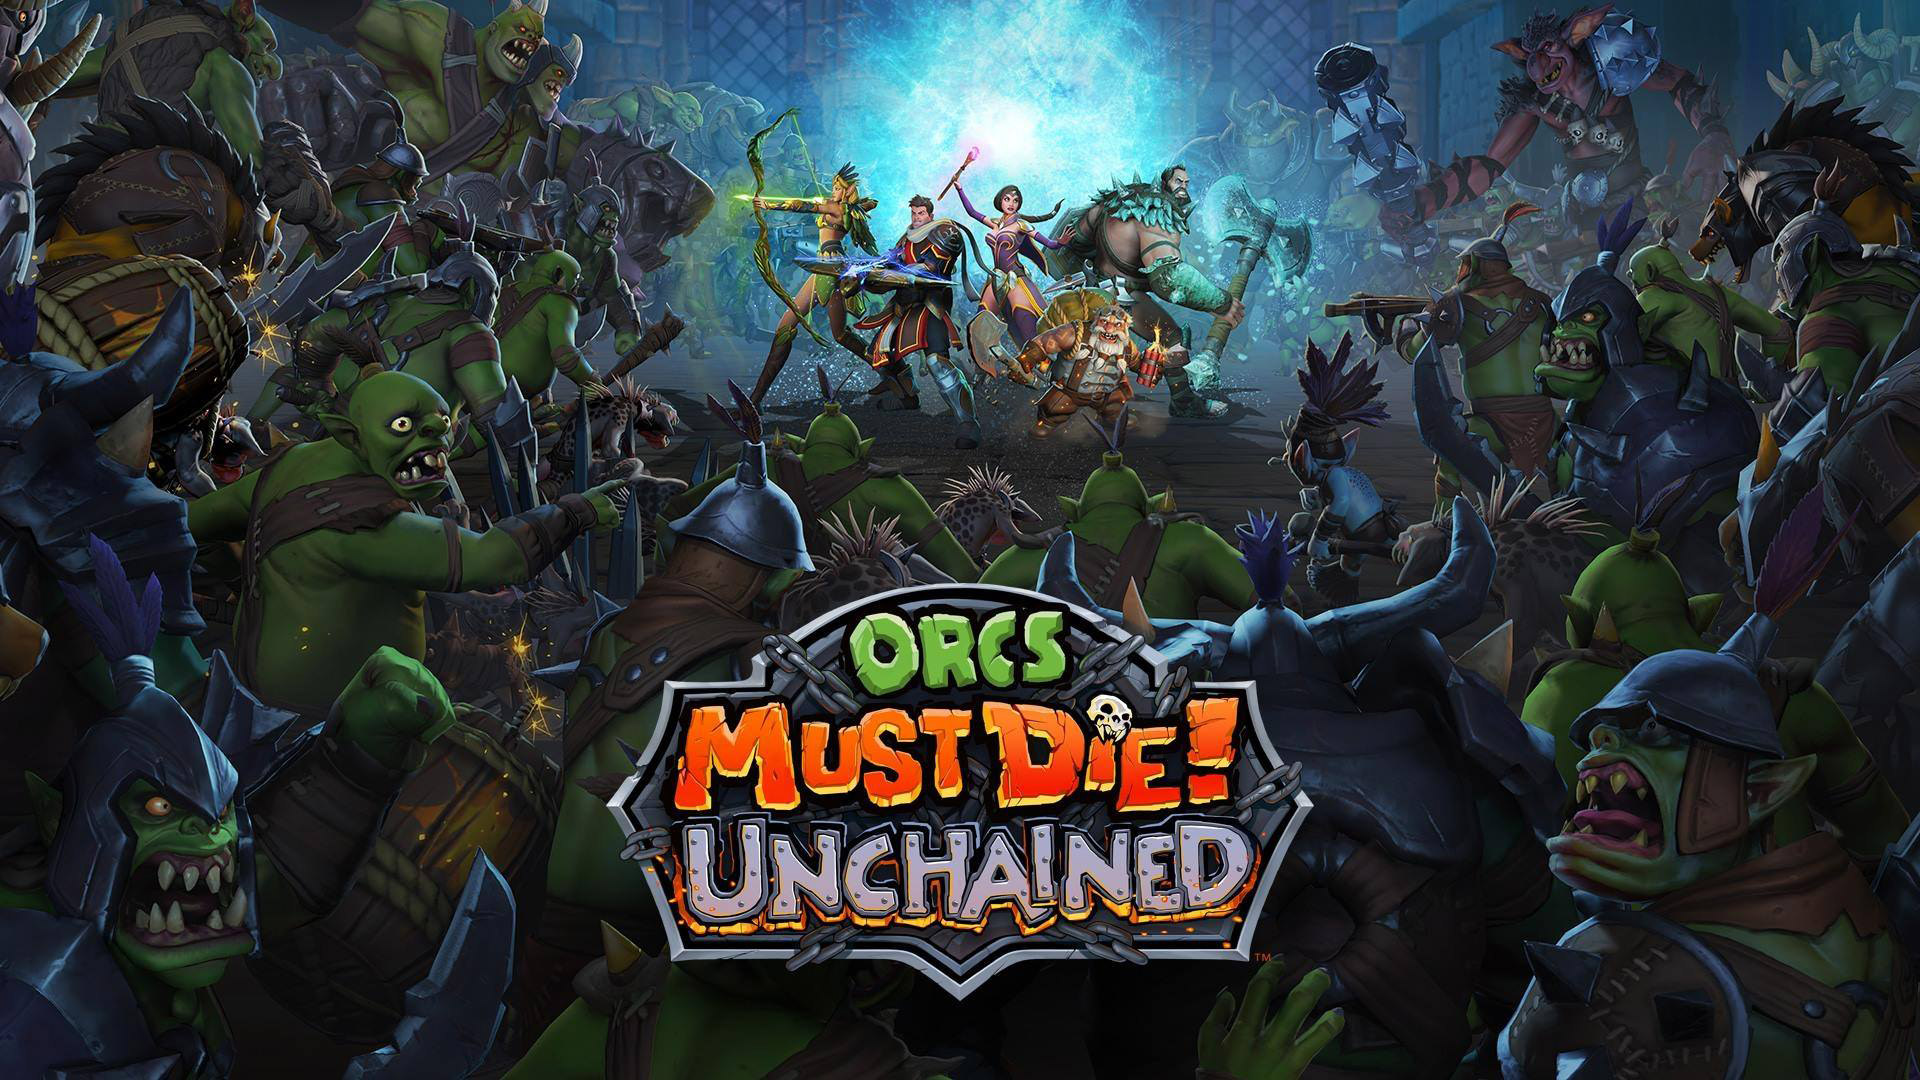 Free Orcs Must Die! Unchained Wallpaper in 1920x1080